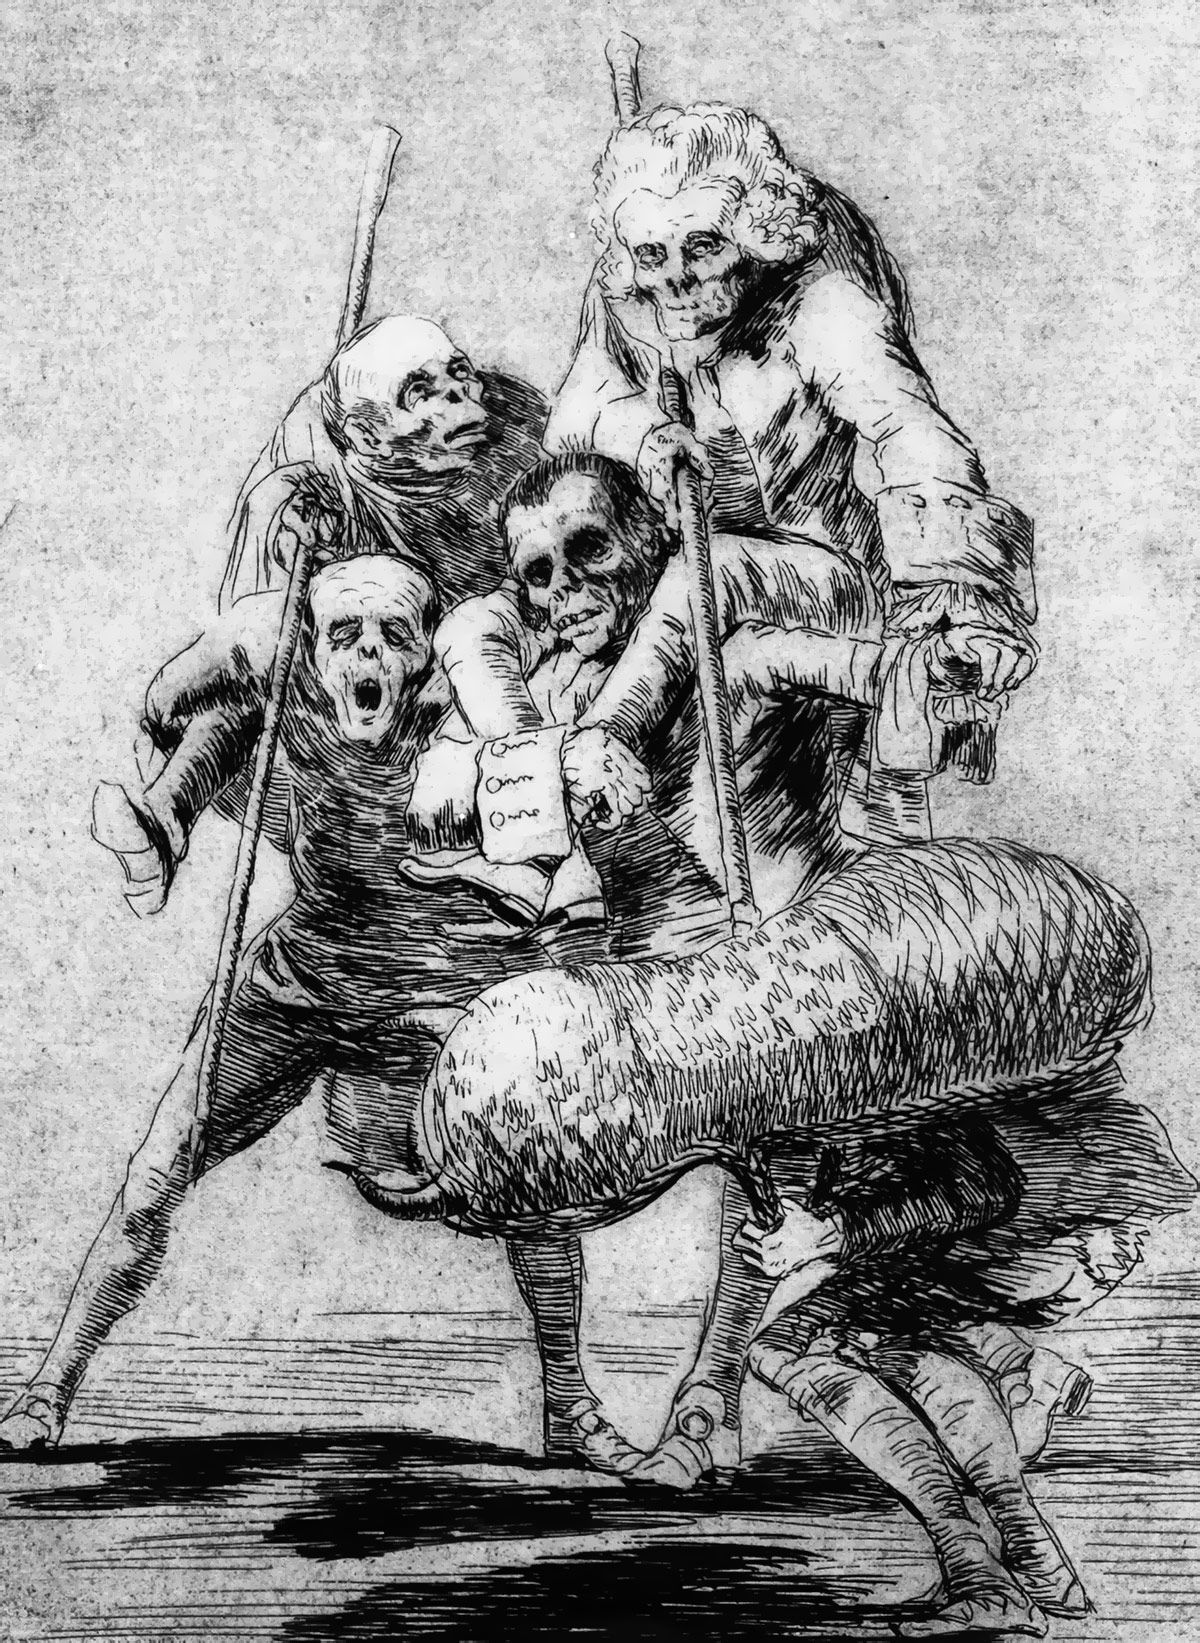 Francisco Goya. Now One, Now Another, Los Caprichos plate 77 (1799)